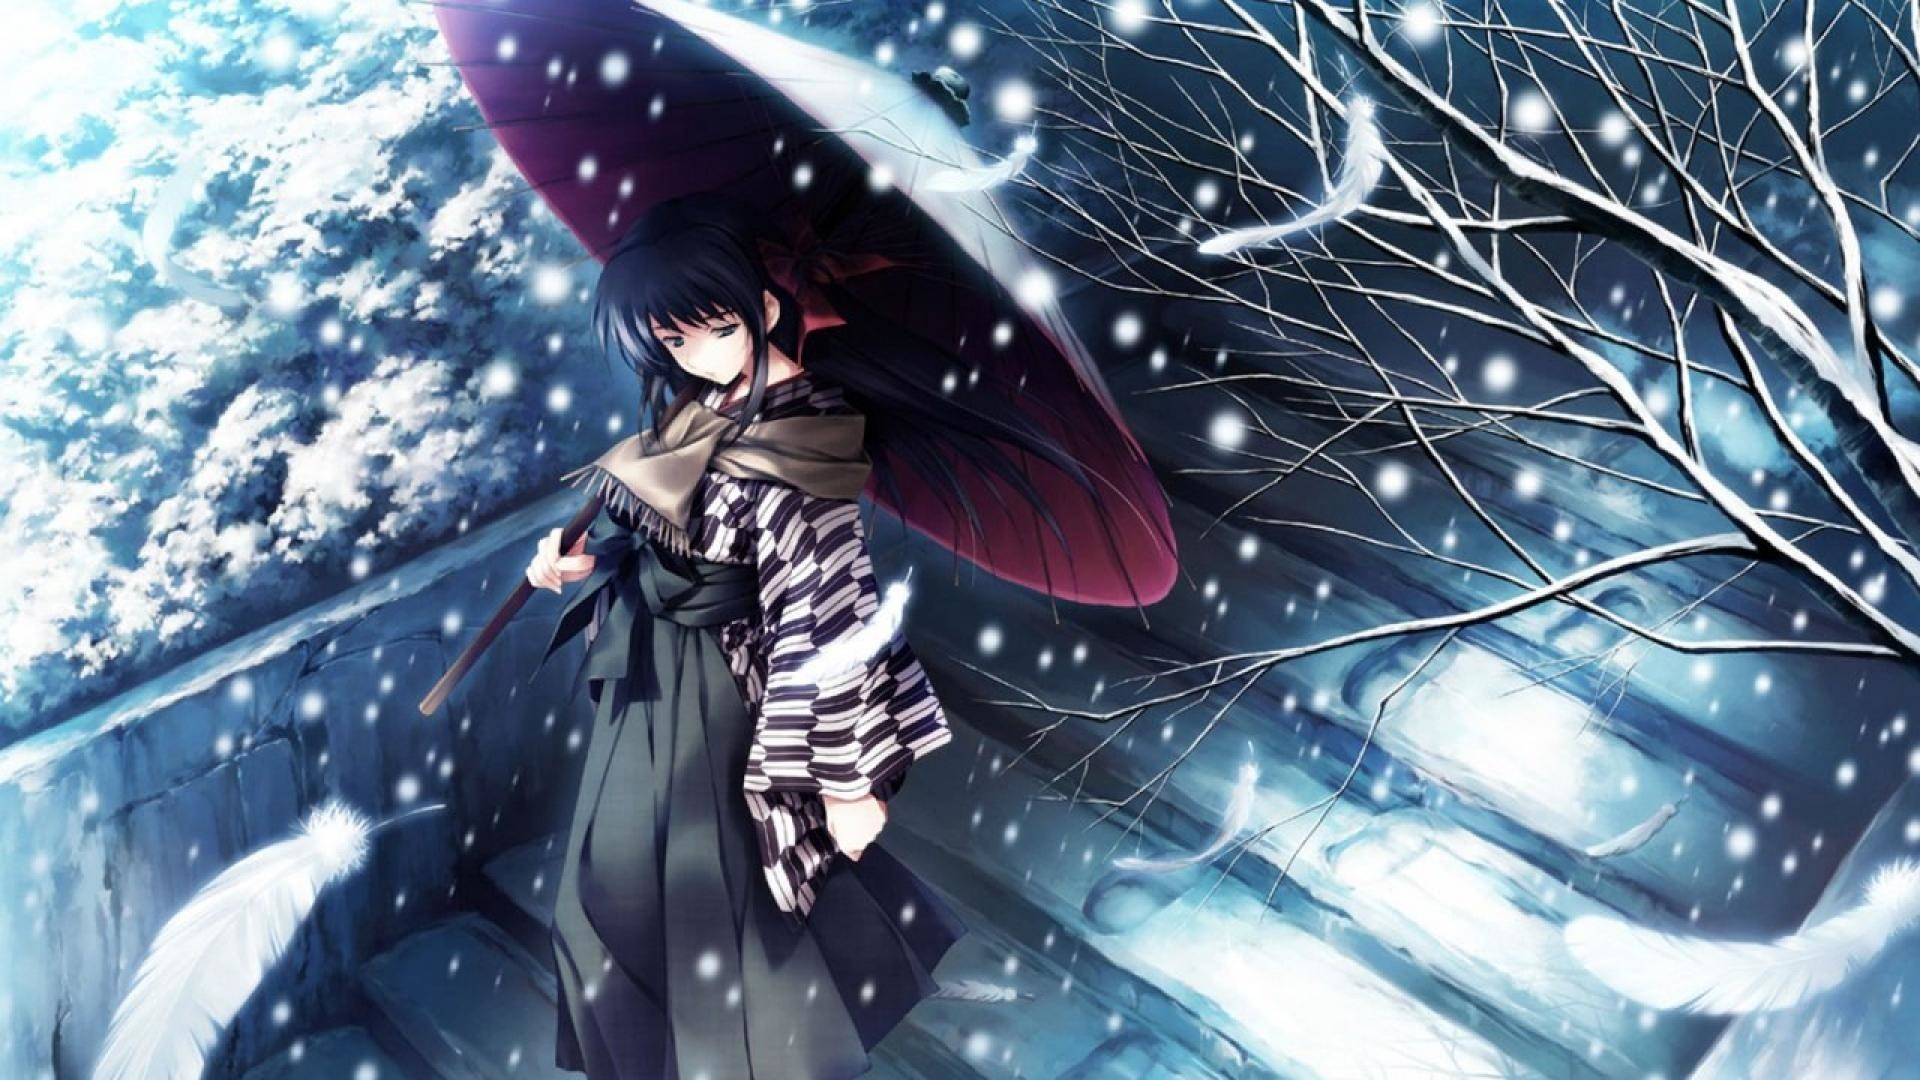 winter anime wallpaper ·①